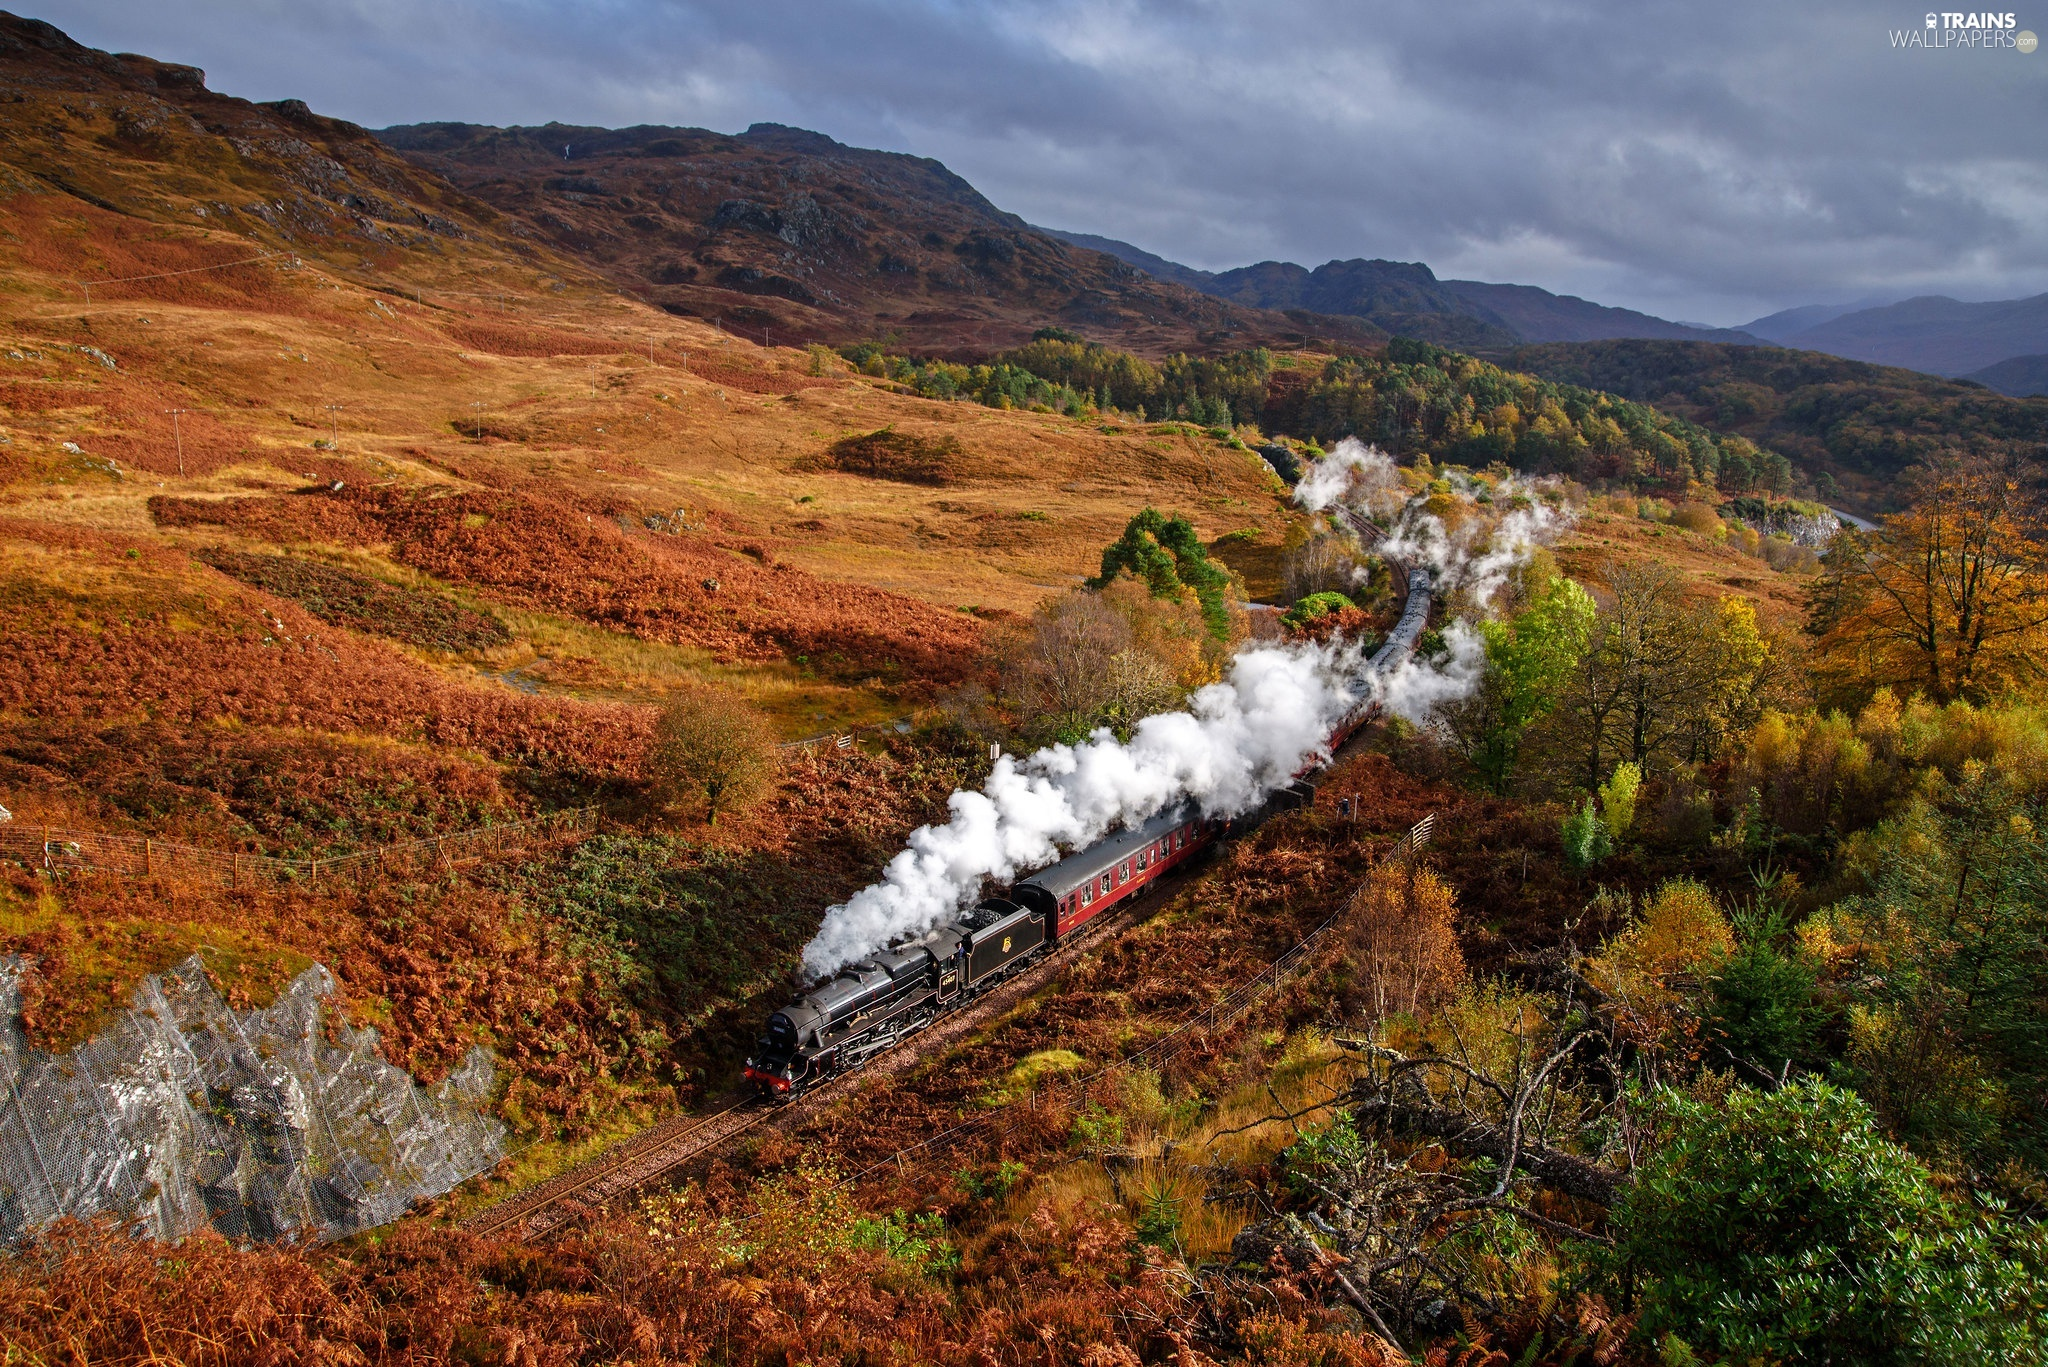 Train, Mountains, trees, viewes, autumn